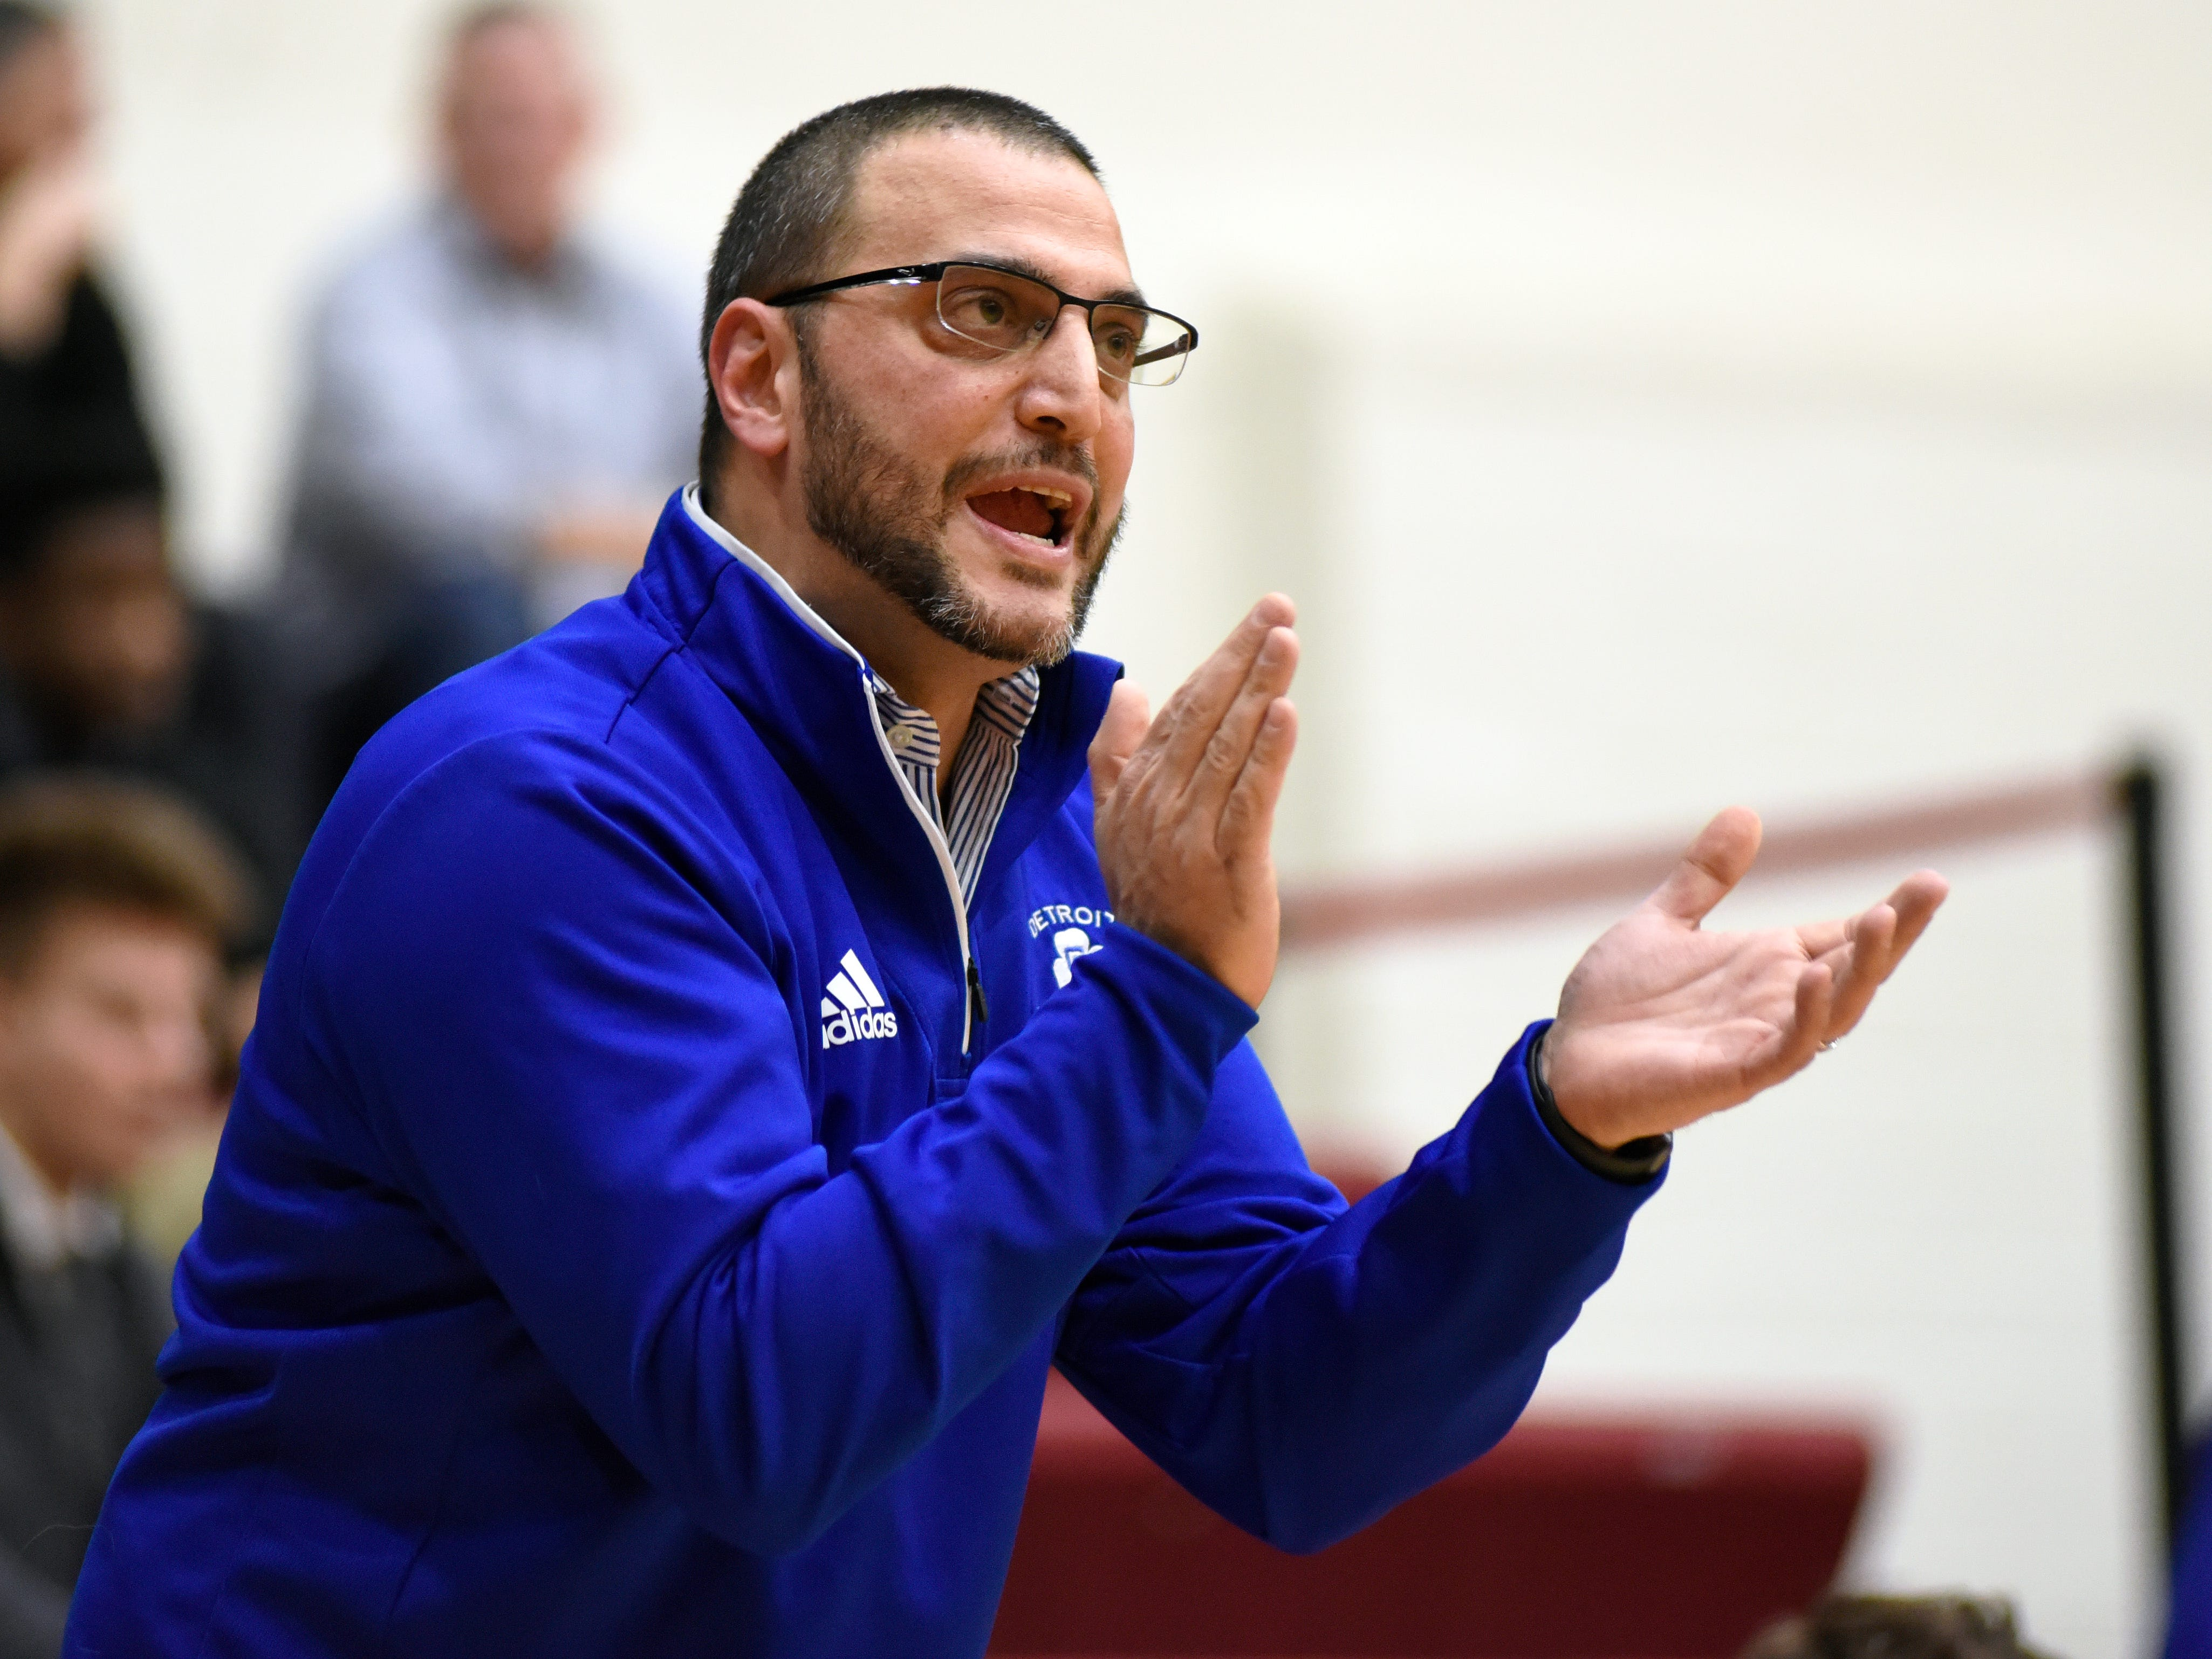 Detroit Catholic Central basketball head coach Brandon Sinawi cheers on his team as they played against Detroit Jesuit during the first quarter.